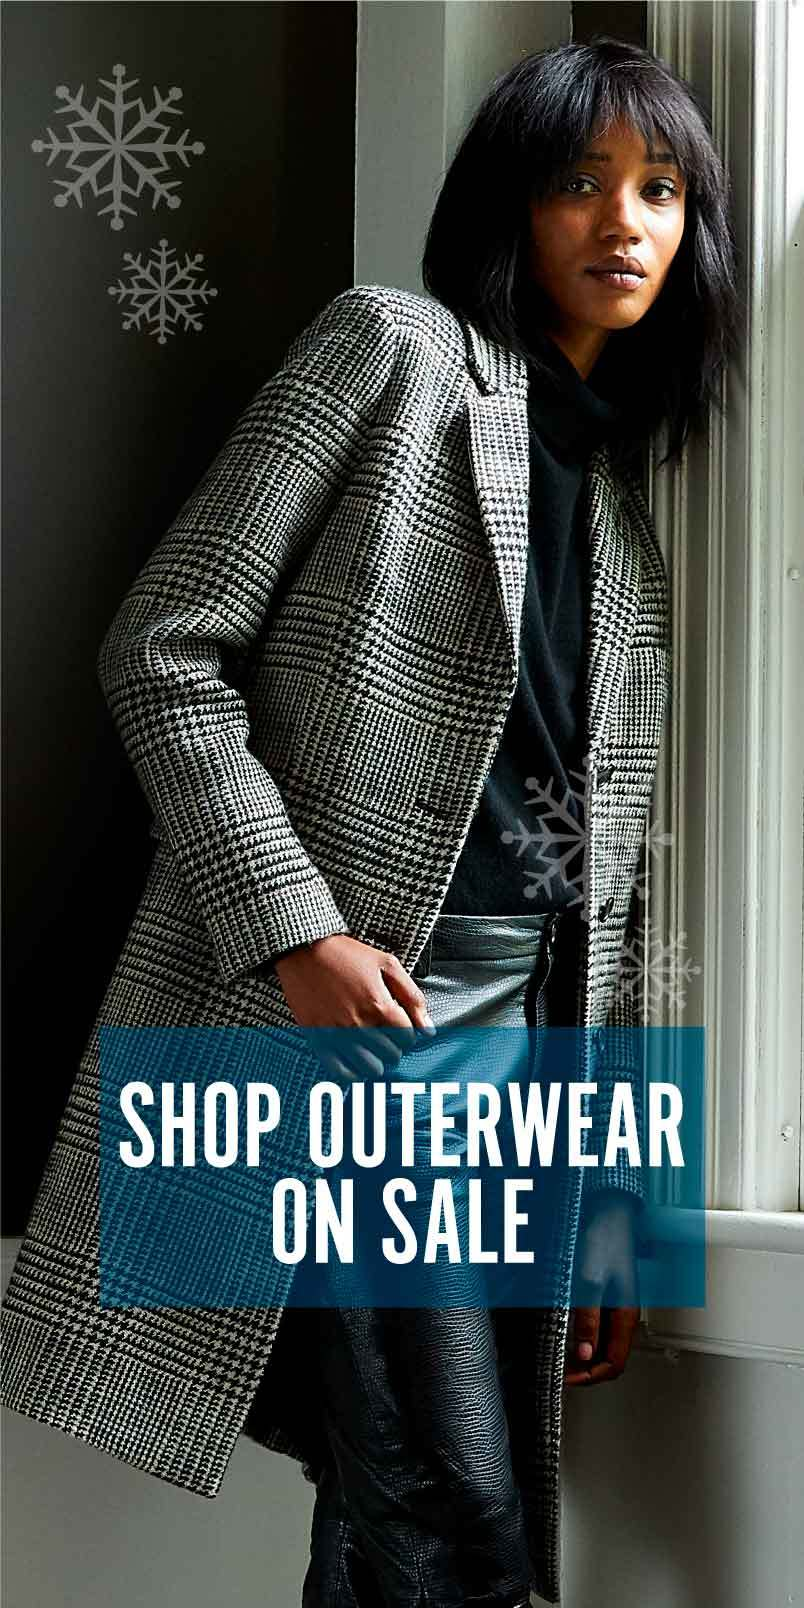 Outerwear on sale